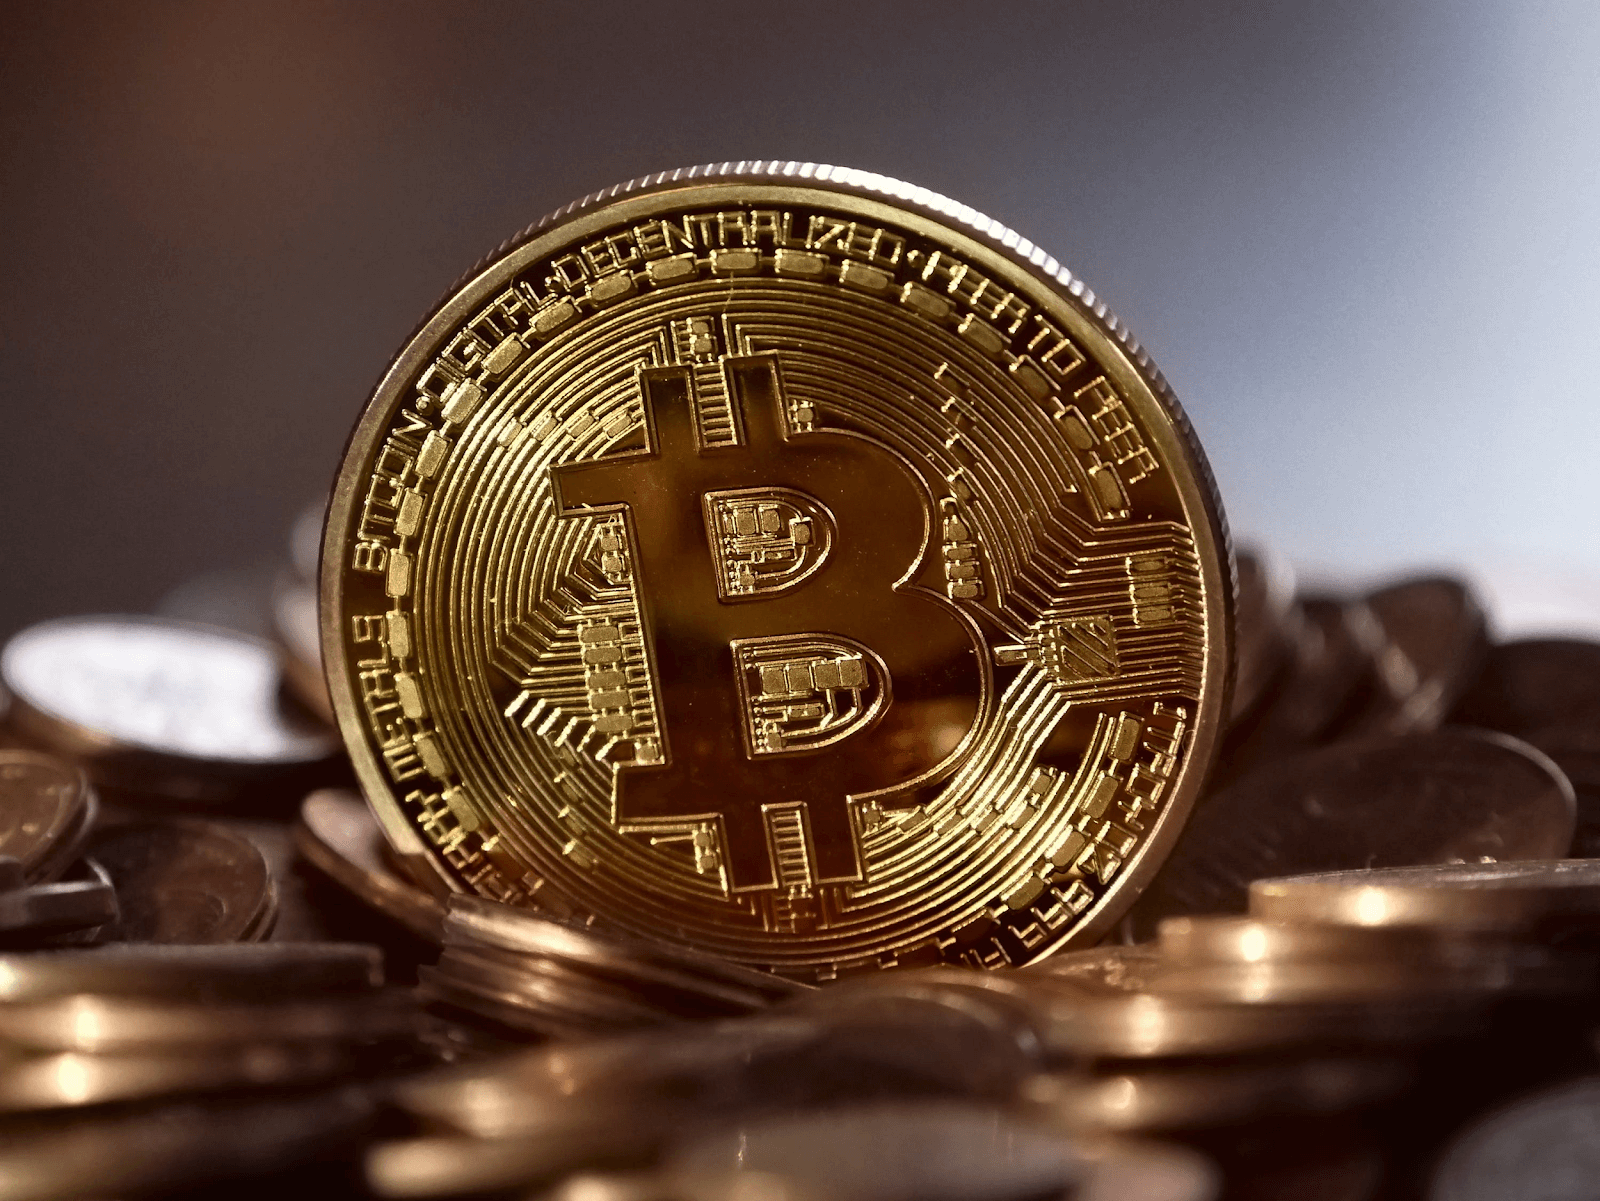 5 Reasons Why Bitcoin is Becoming a Mainstream Payment Option